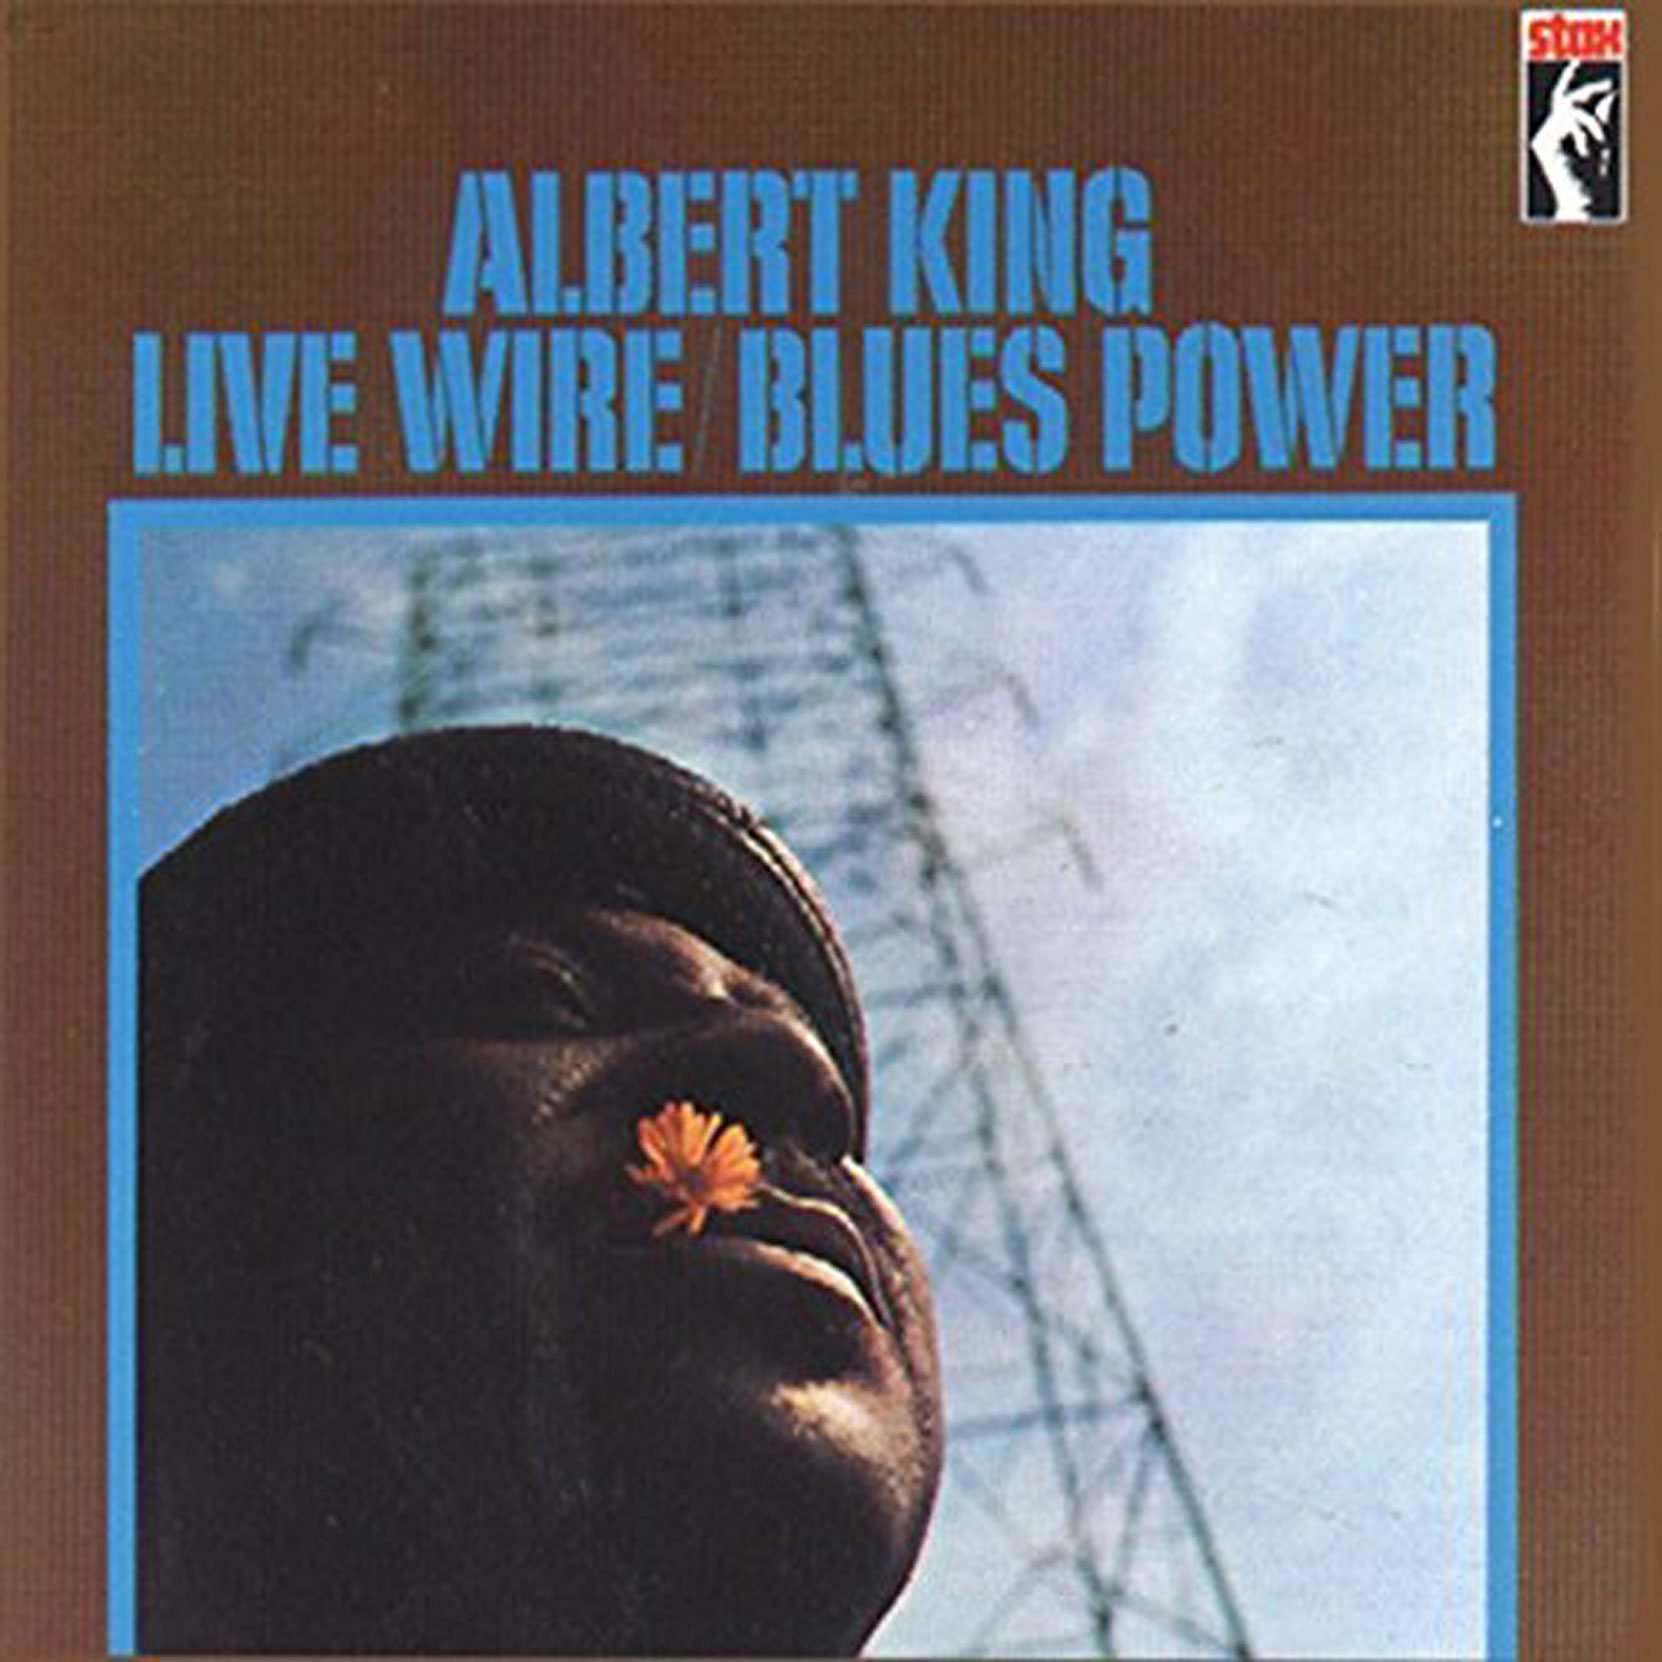 Albert King - Live Wire/Blues Power, released on Stax Records. CD cover.